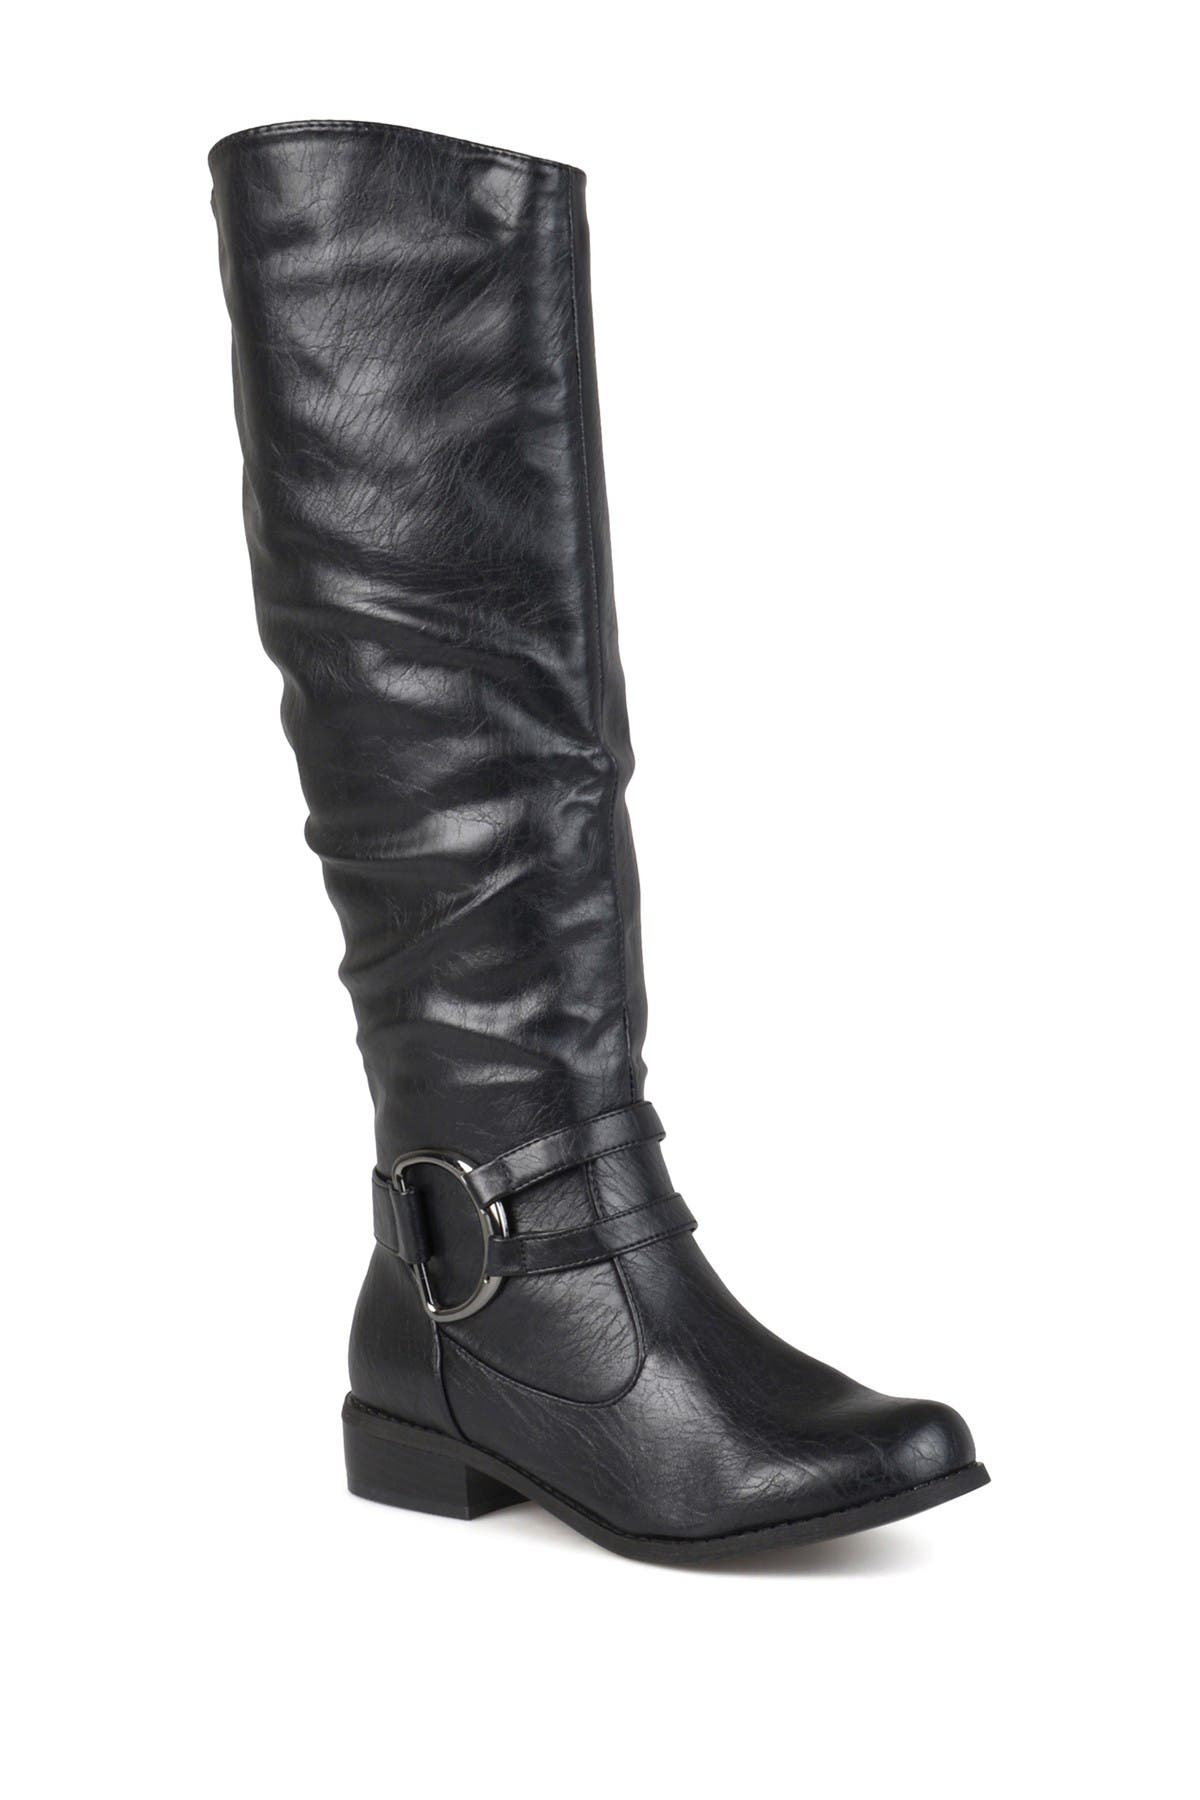 Image of JOURNEE Collection Charming Wide Calf Boot